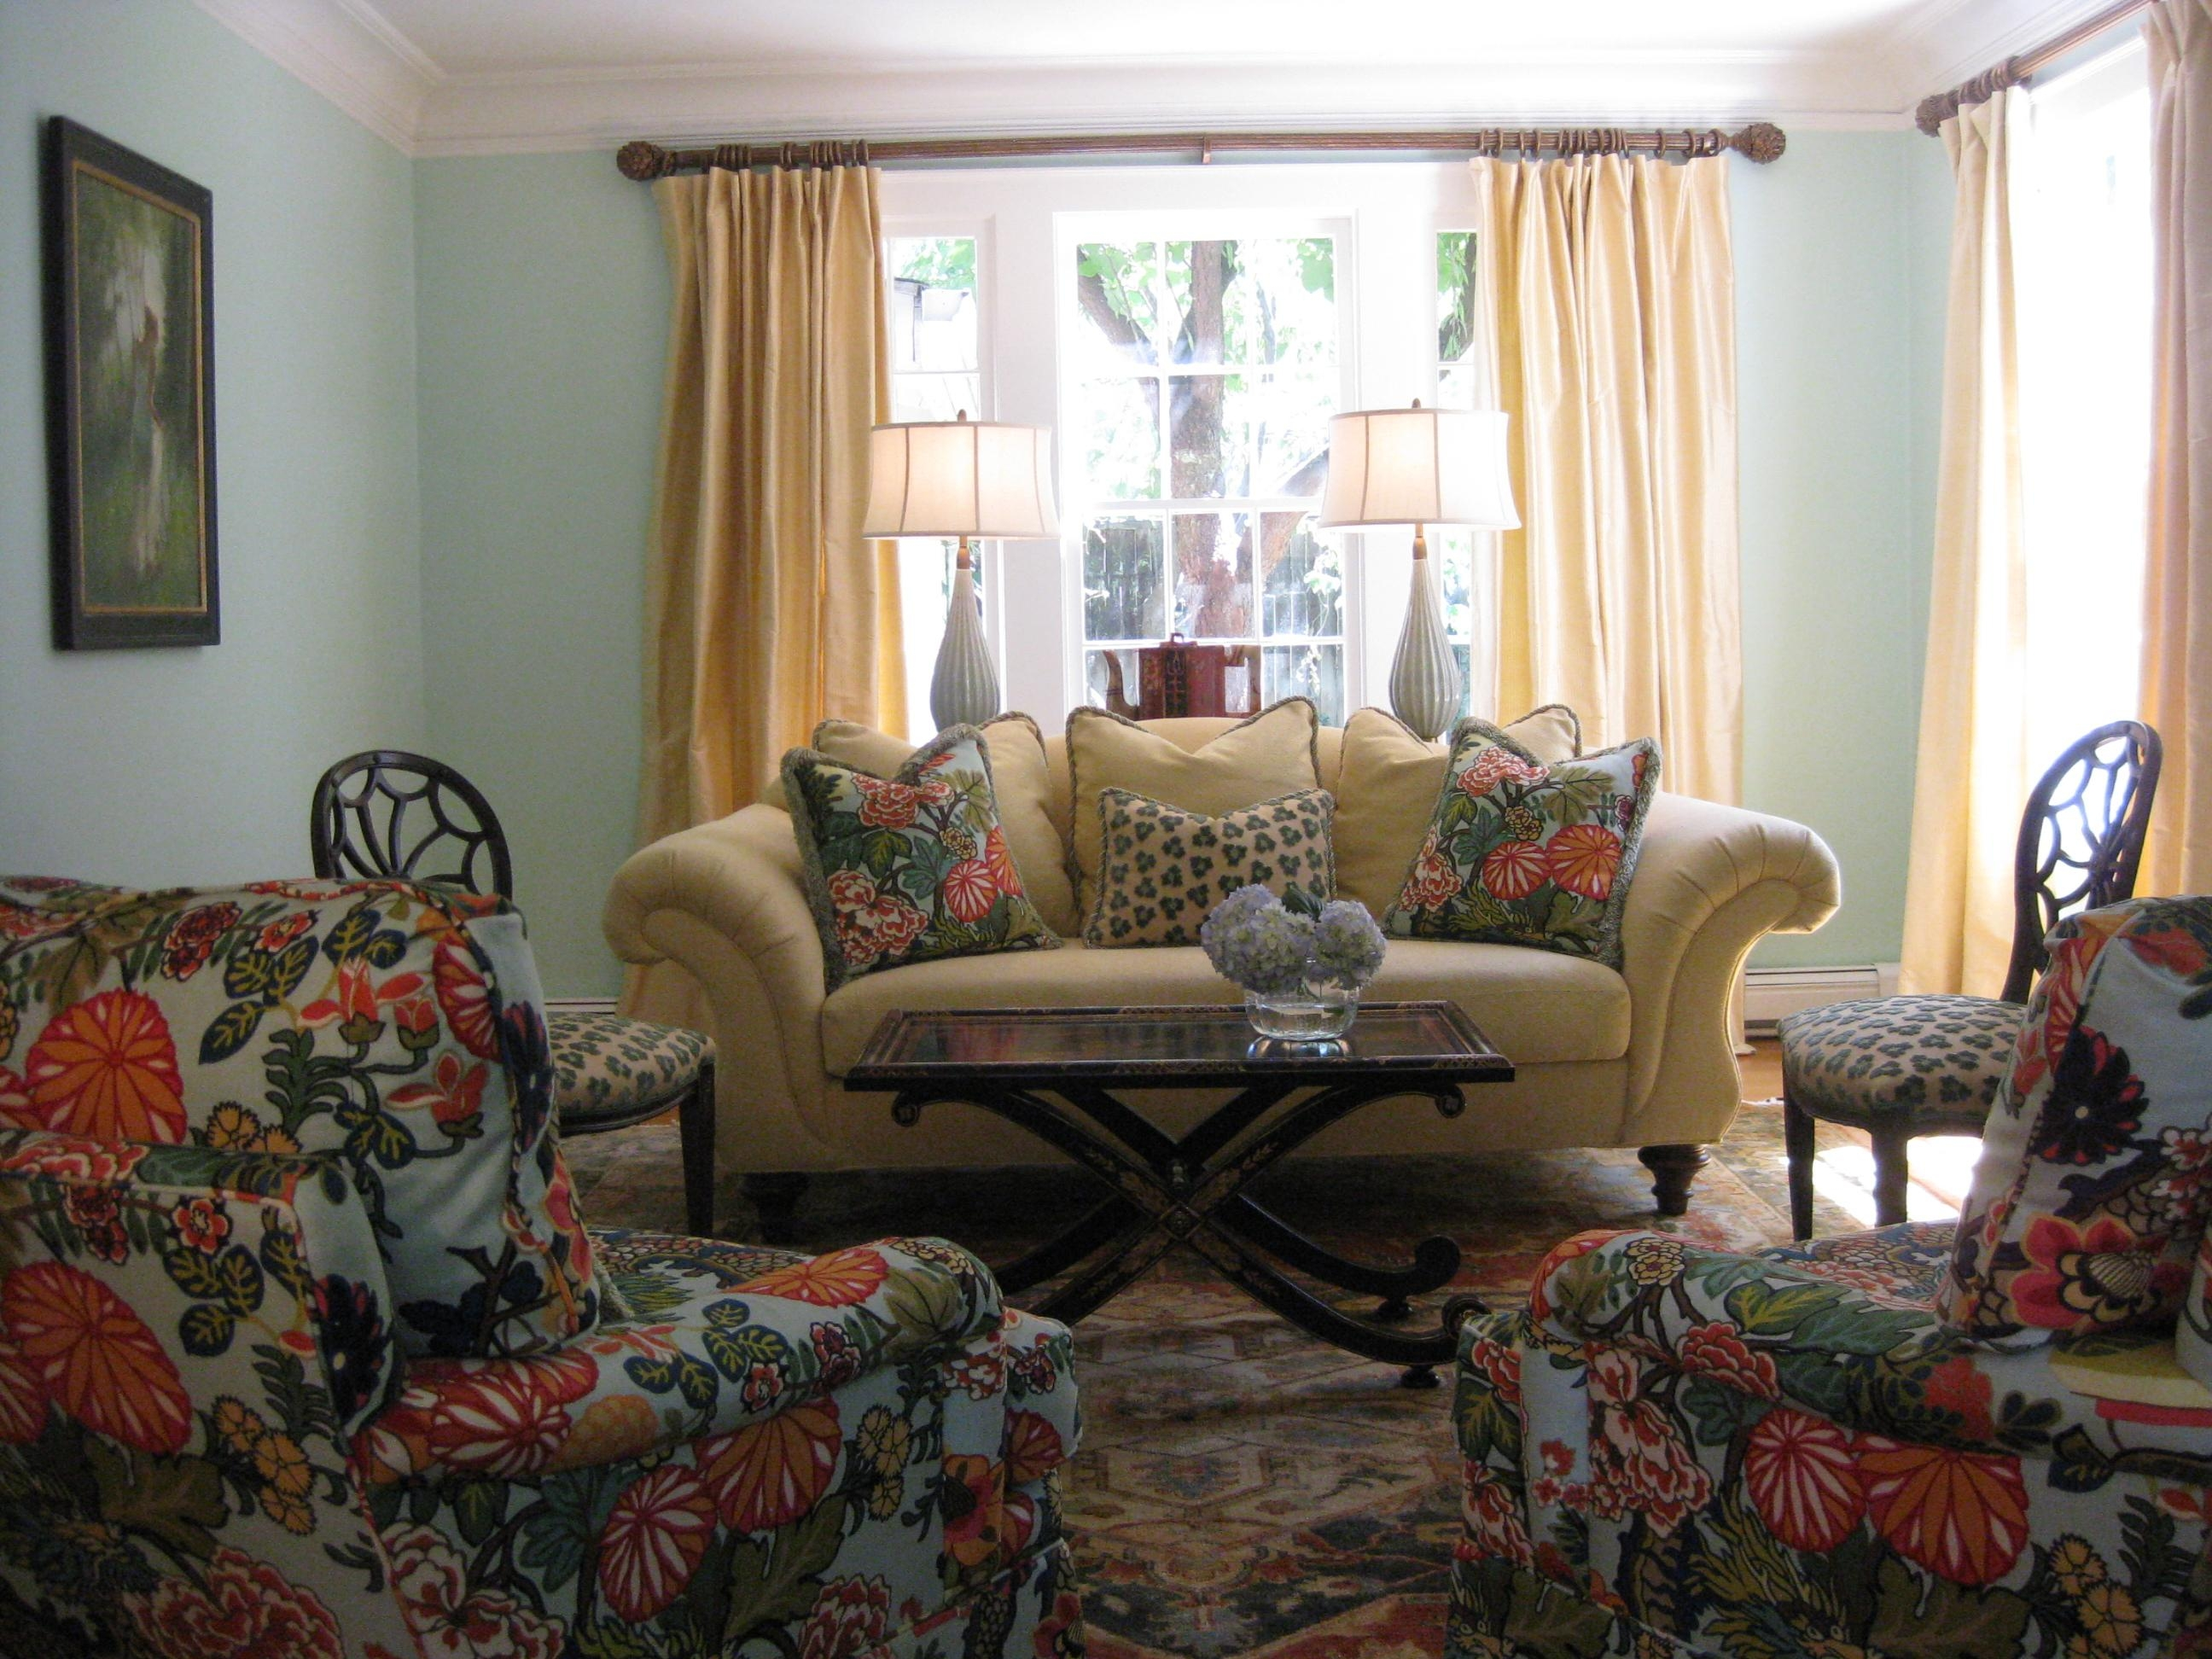 Fabric Sofa Styles Intended For Floral Sofas And Chairs (View 11 of 20)